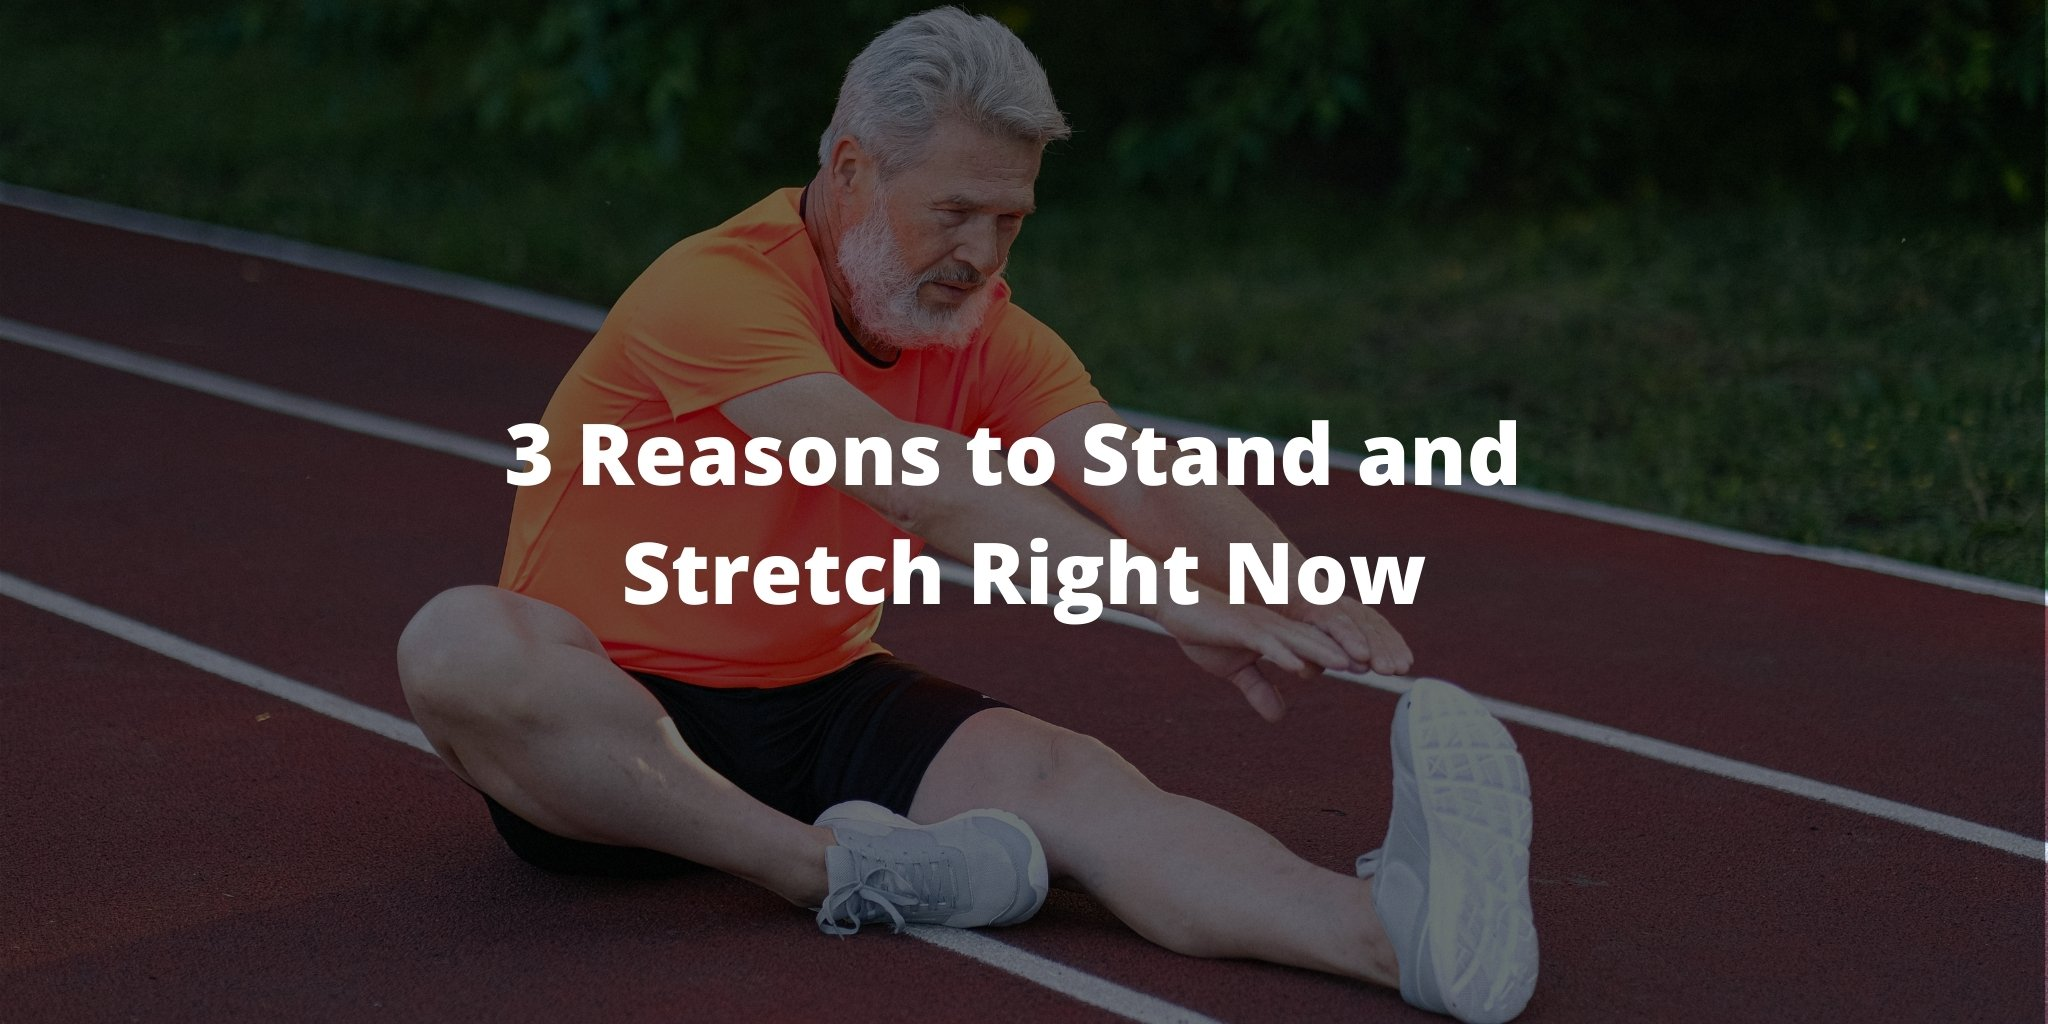 3 Reasons to Stand and Stretch Right Now